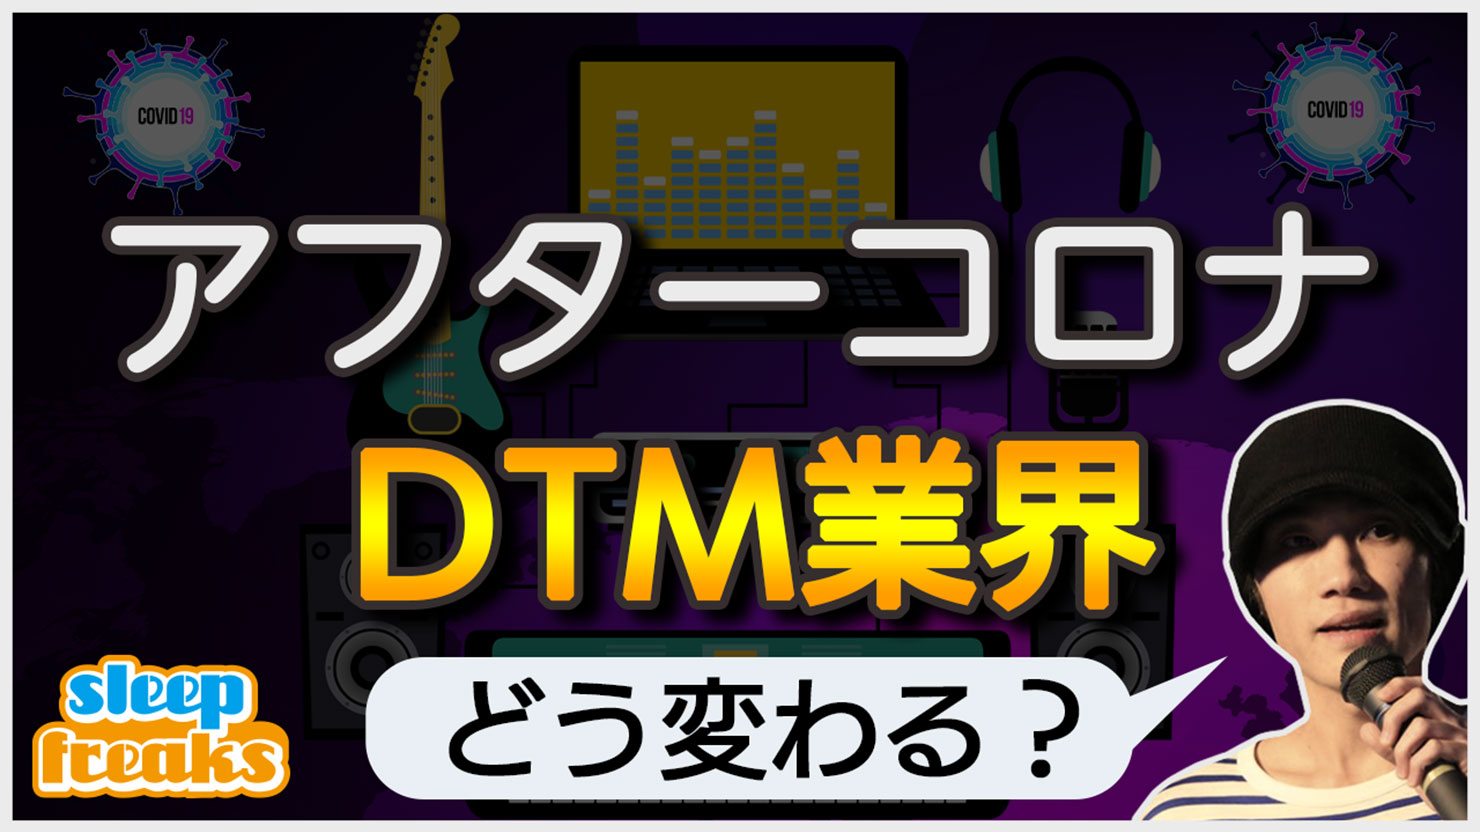 After-With-covid-19-DTM-music